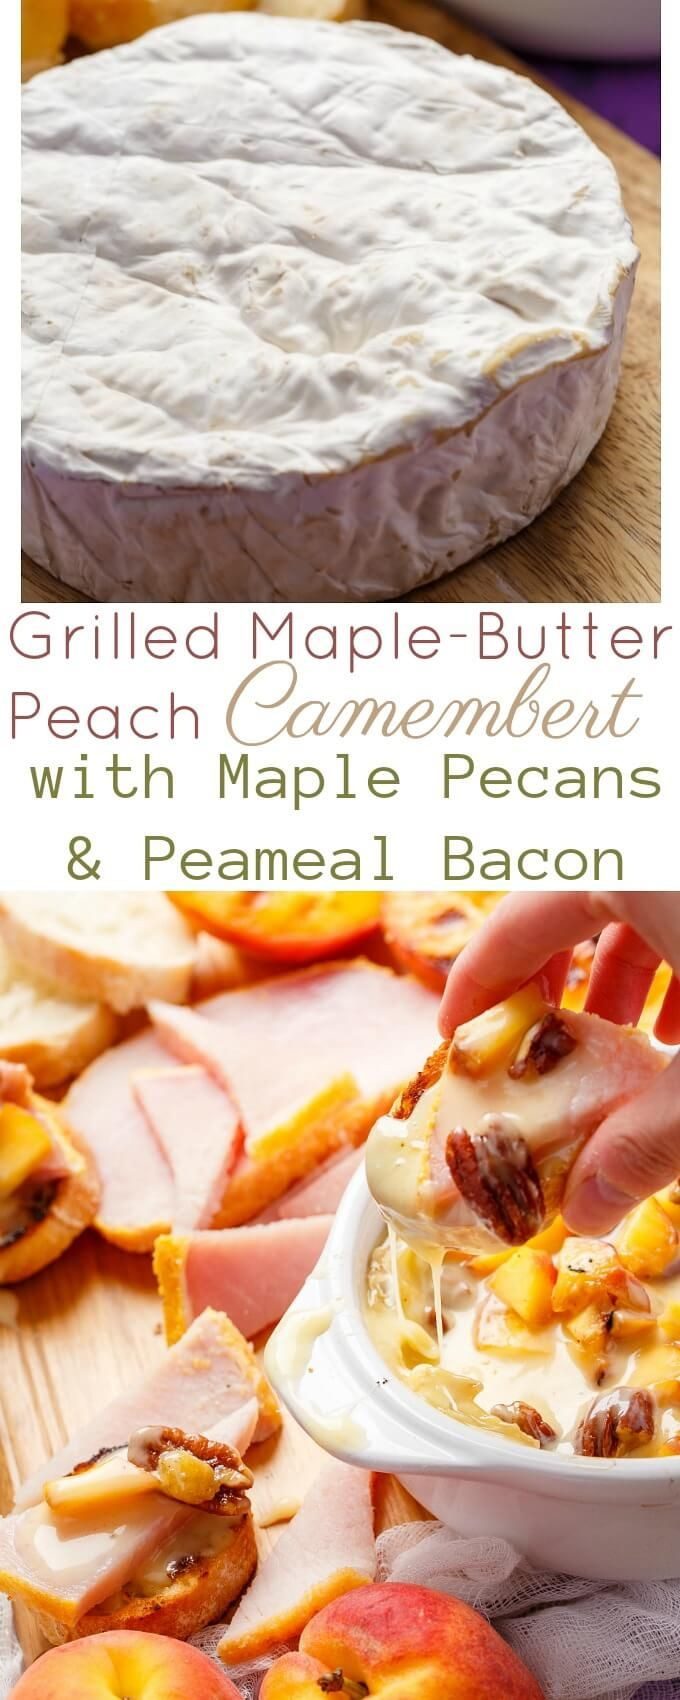 Grilled Maplebutter Peach Camembert Cheese With Maple Pecans & Peameal  Bacon